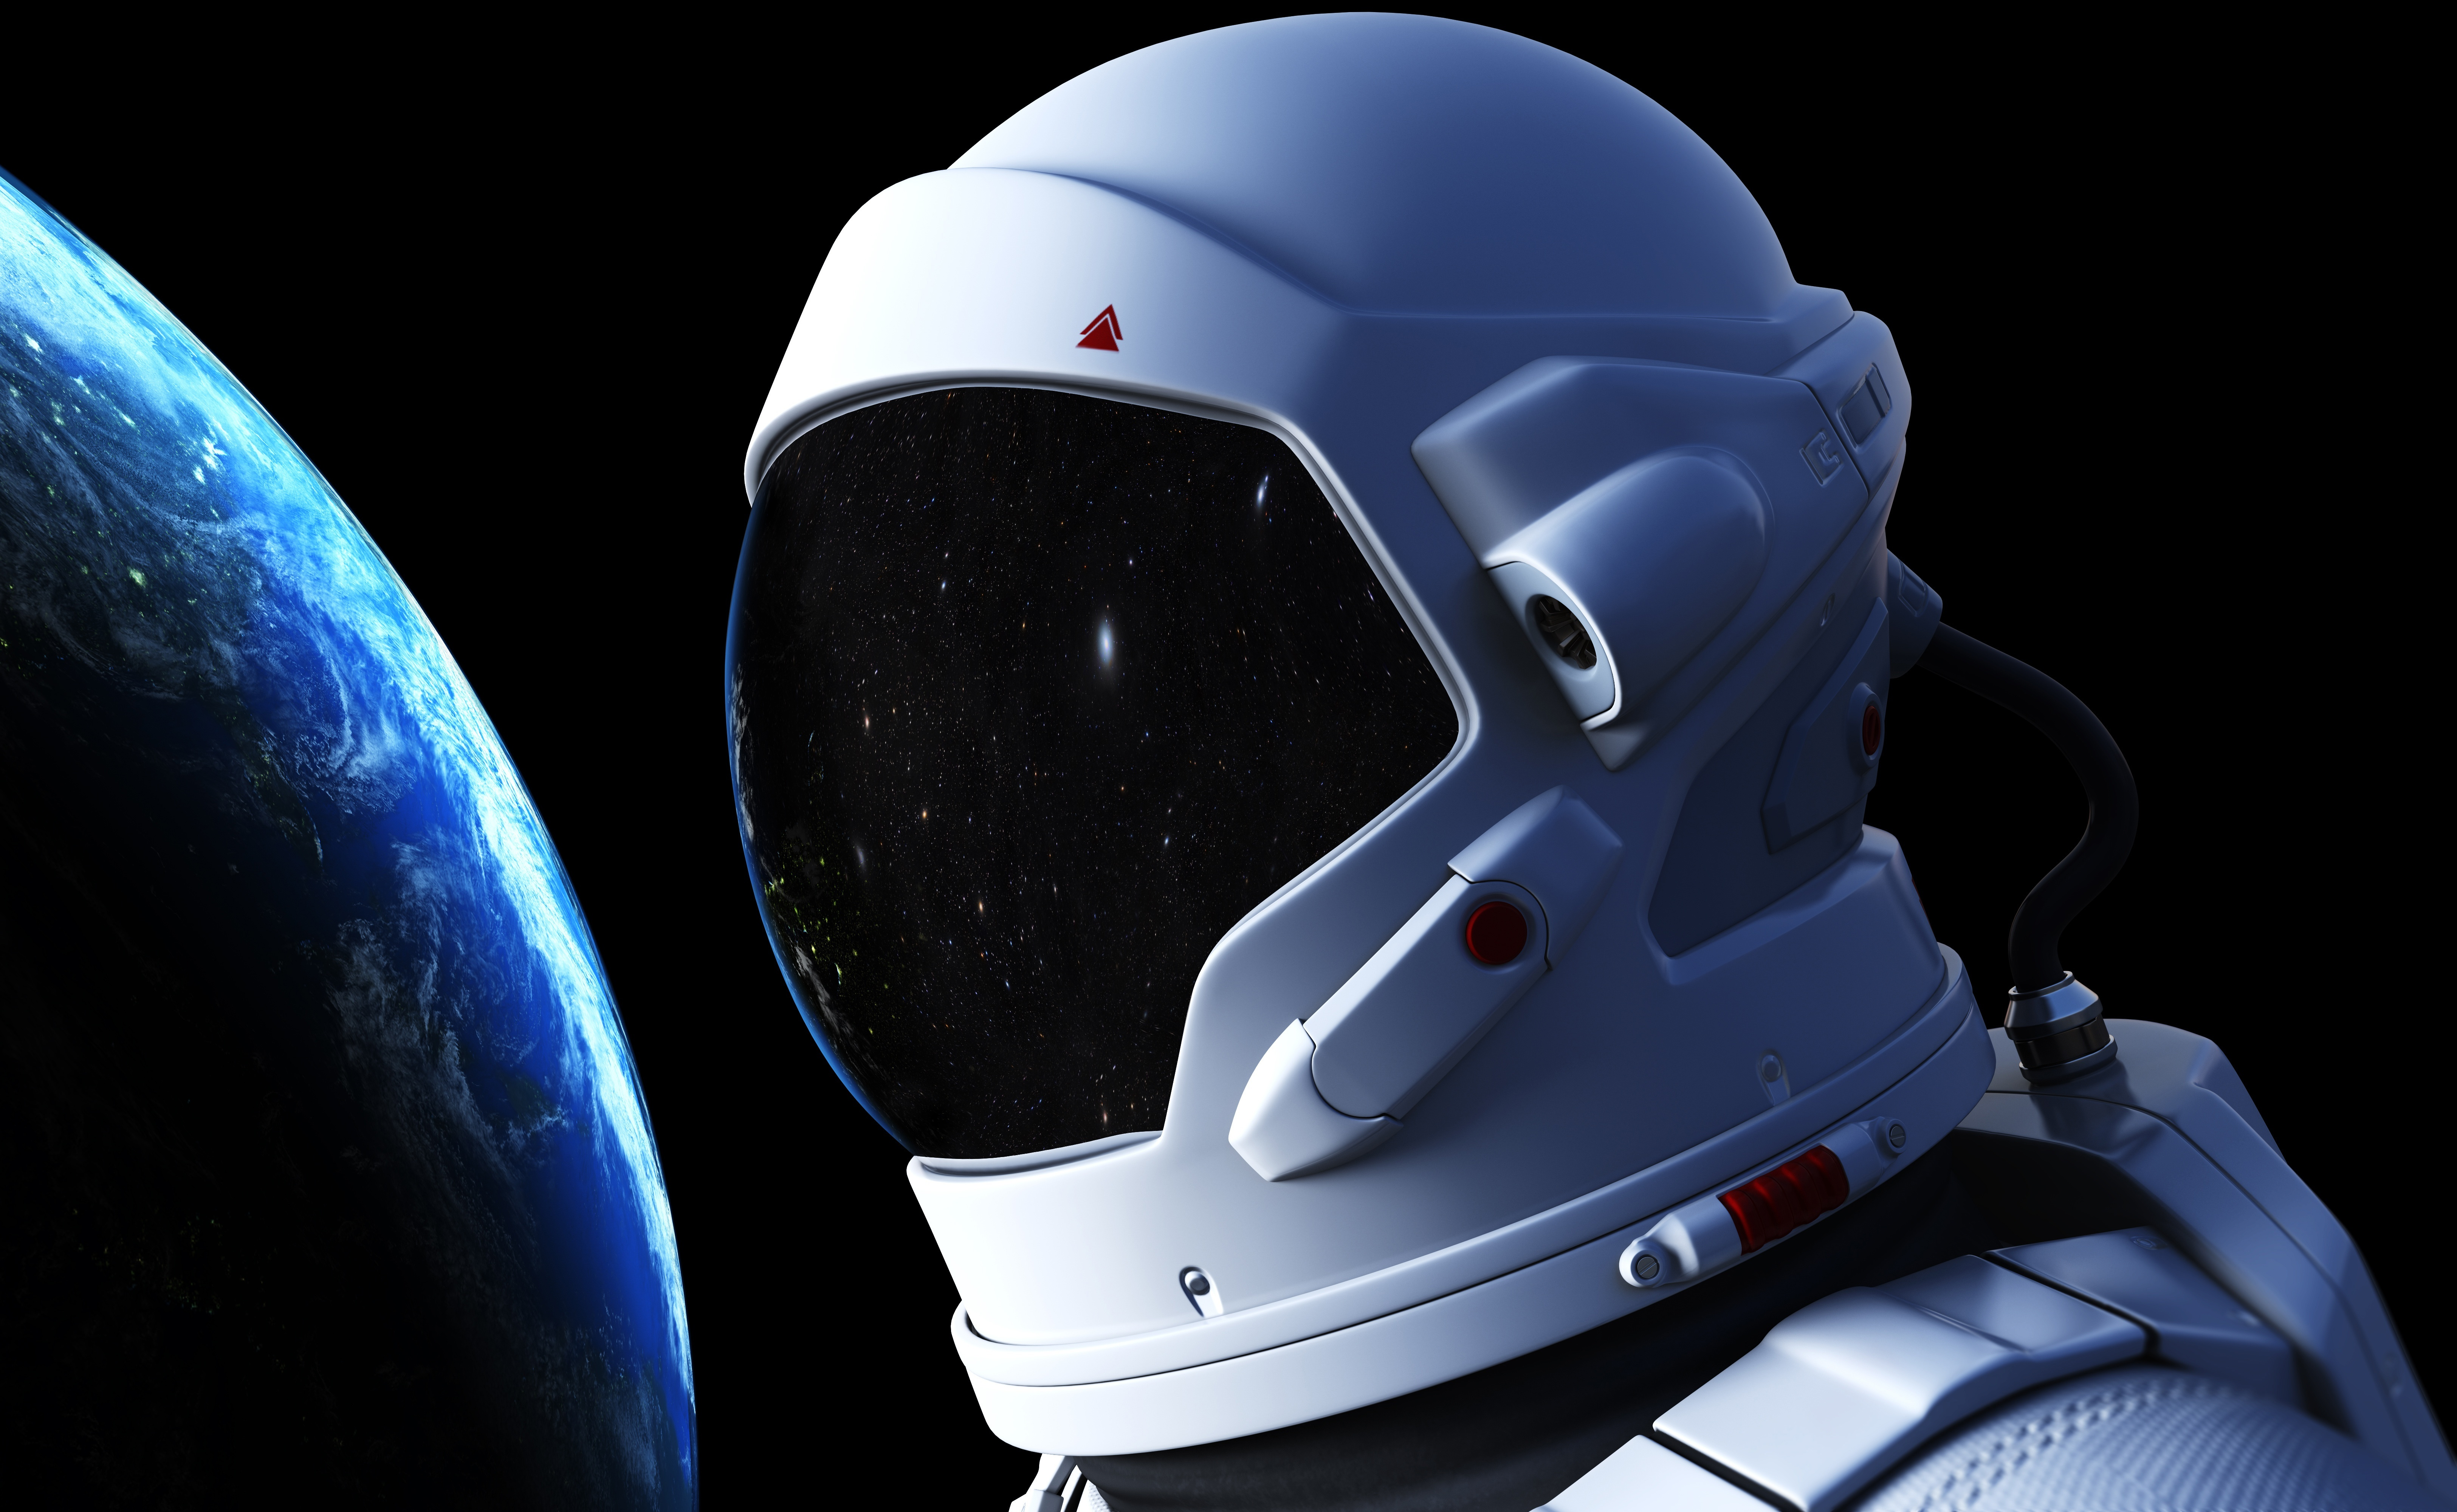 Image: Astronaut, spacesuit, space, planet, Earth, light, reflection, stars